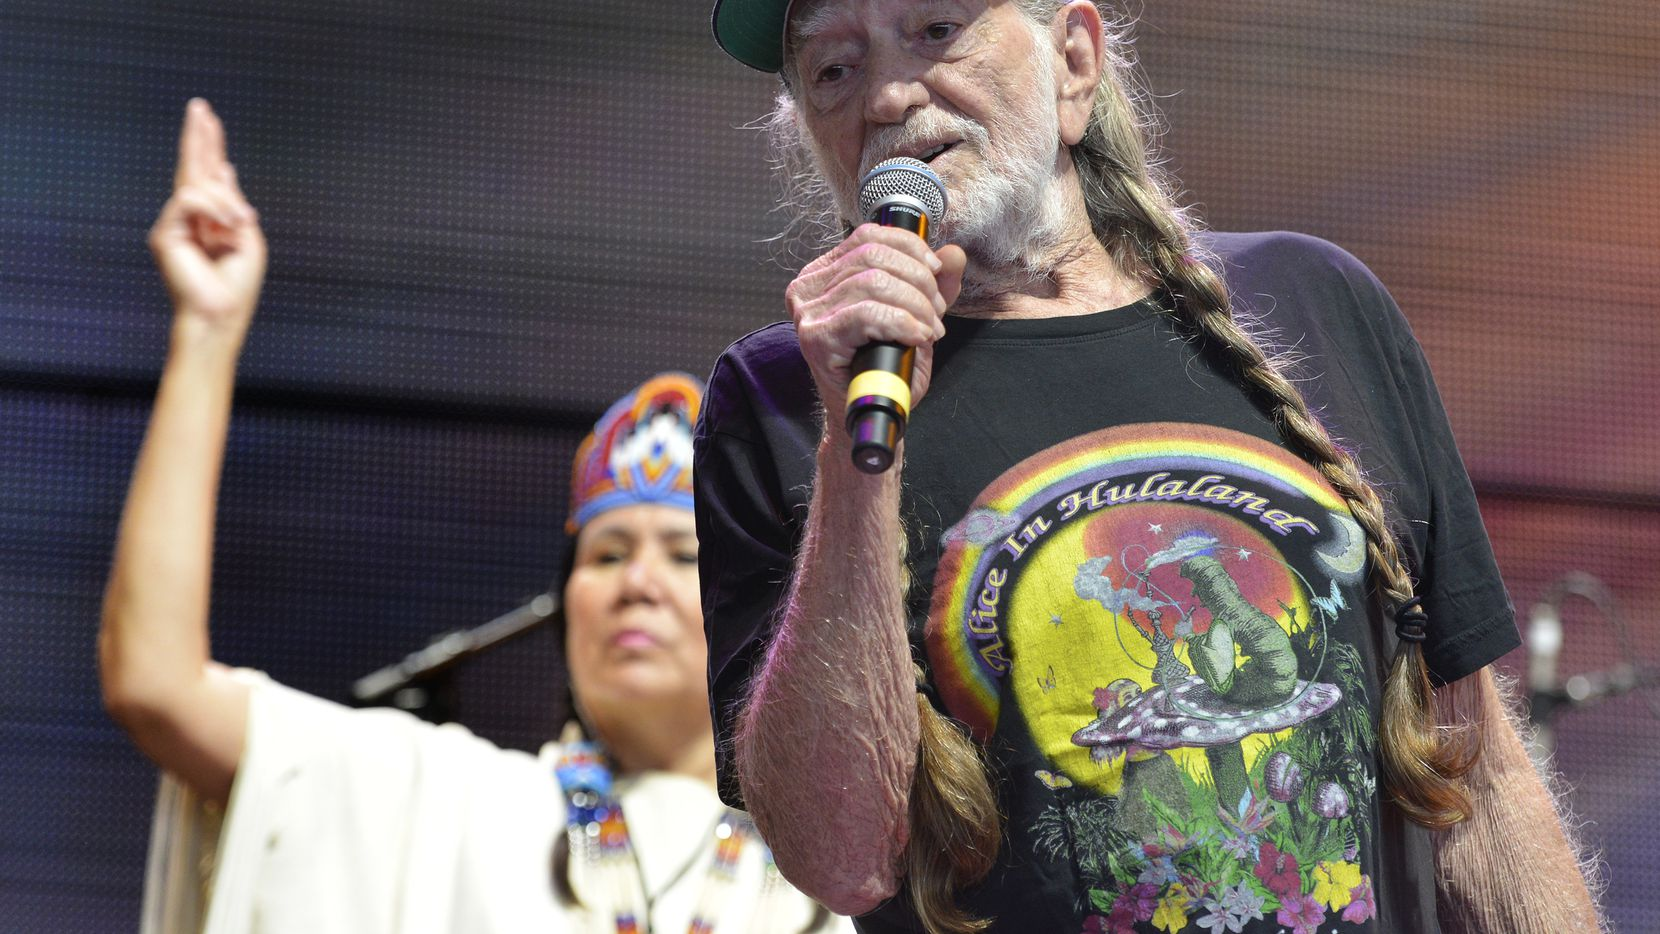 Willie Nelson recites the Lord's Prayer at Farm Aid 14 in Raleigh, N.C., Saturday, Sept. 13, 2014.